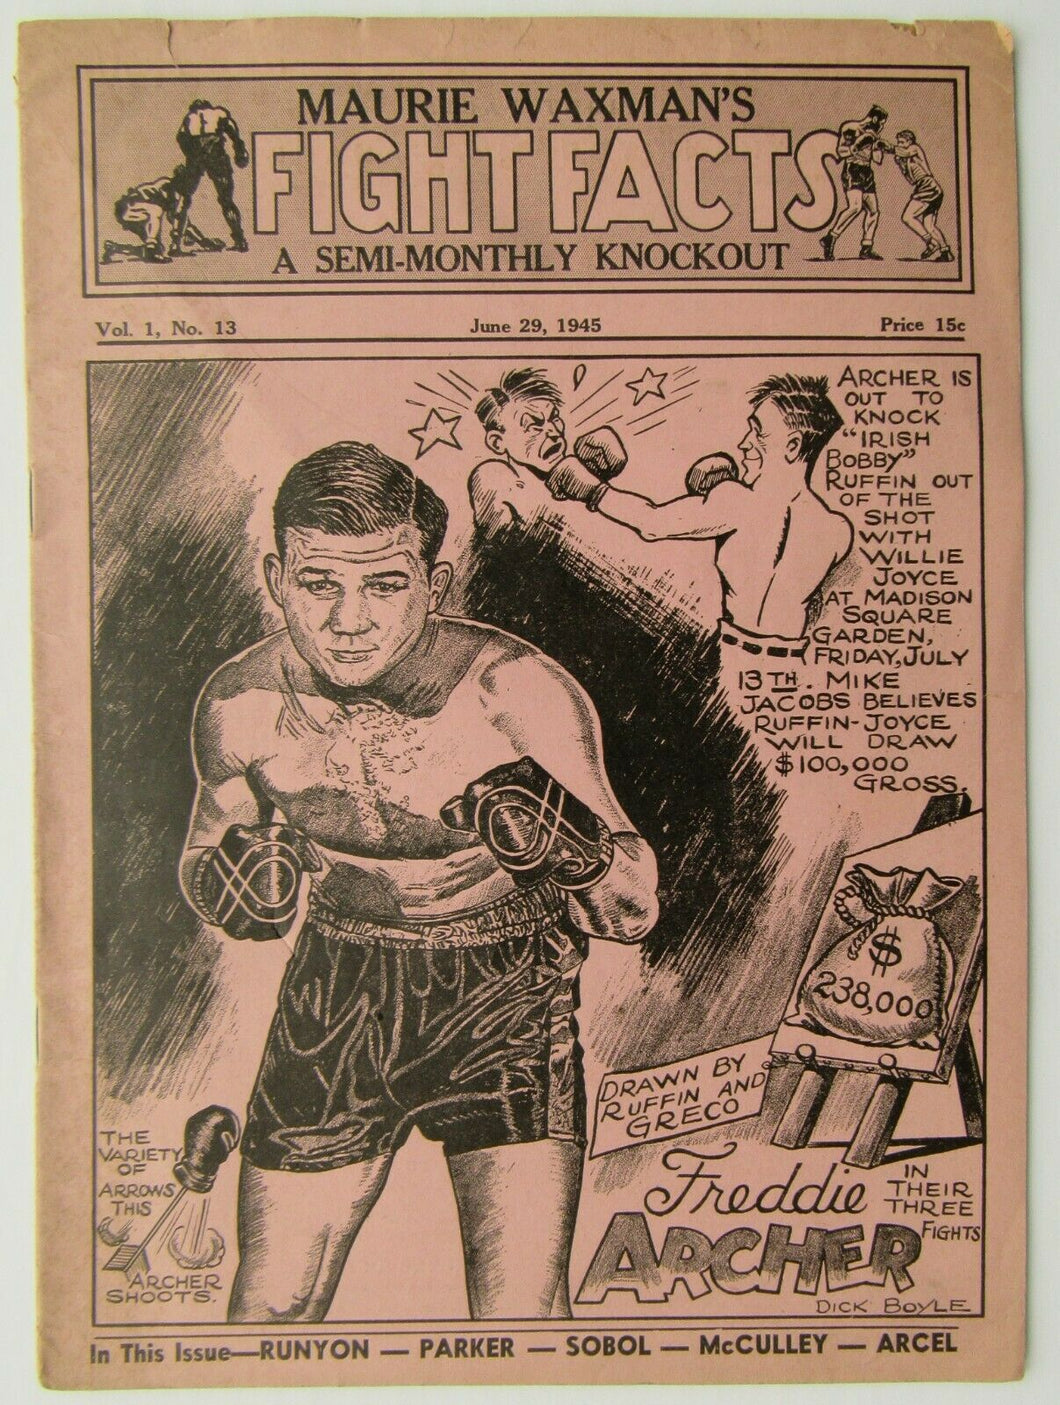 1945 Maurie Waxman's Fight Facts A Semi-Monthly Knockout Magazine Freddie Archer